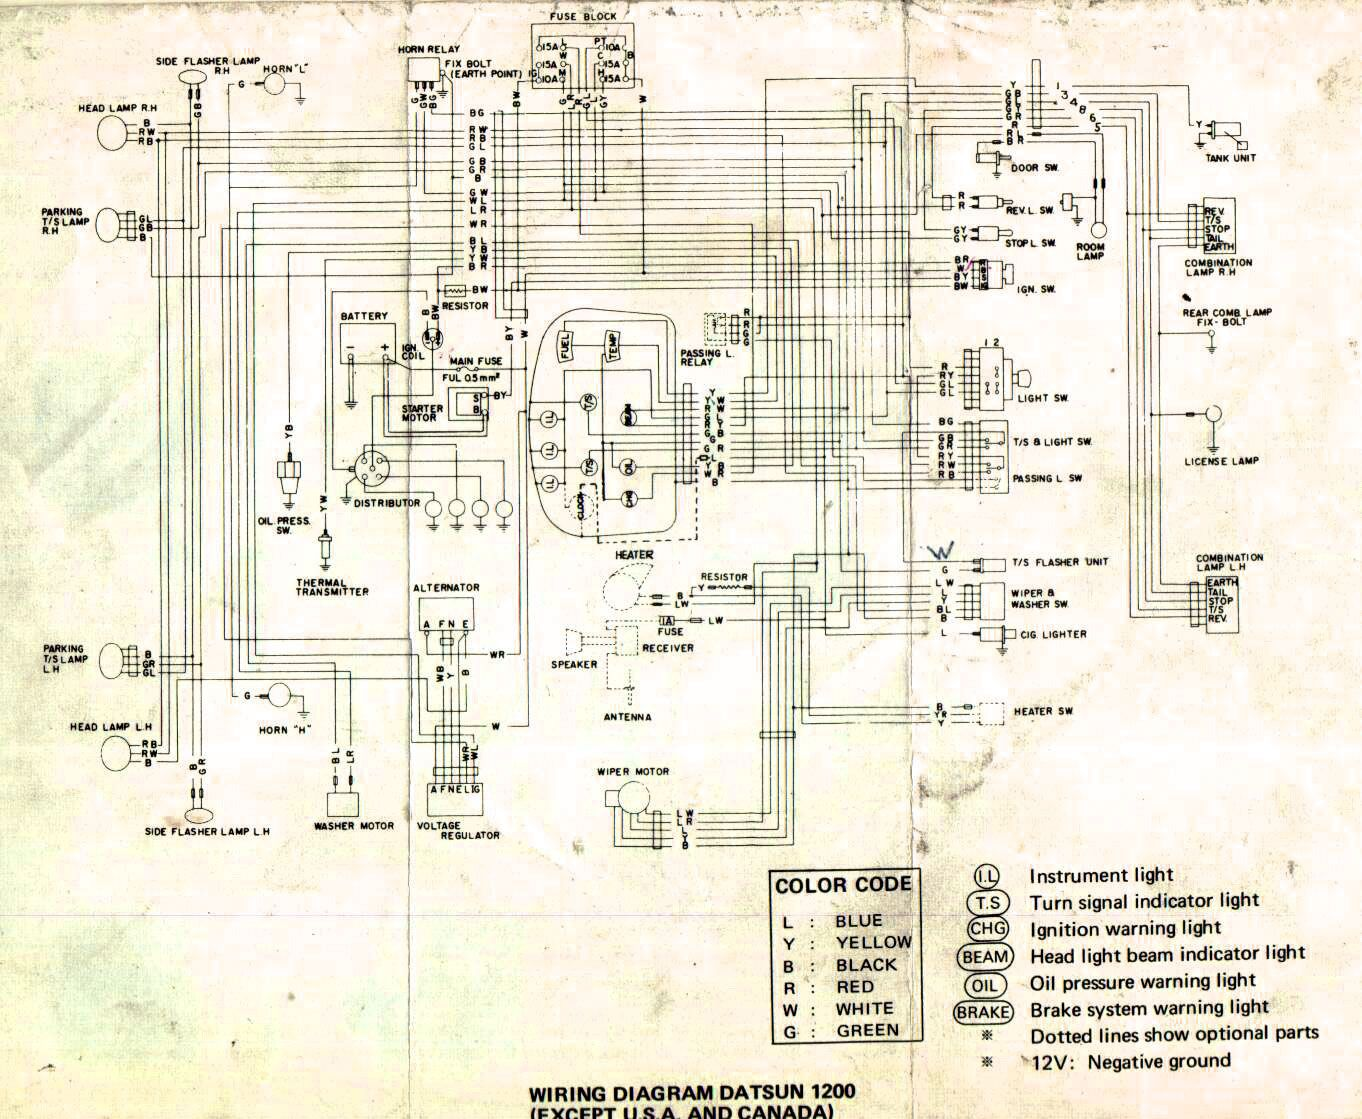 wiring diagram for nissan 1400 bakkie 8 nissan nissan diagram nissan 1400 wiring diagram free download [ 1362 x 1119 Pixel ]